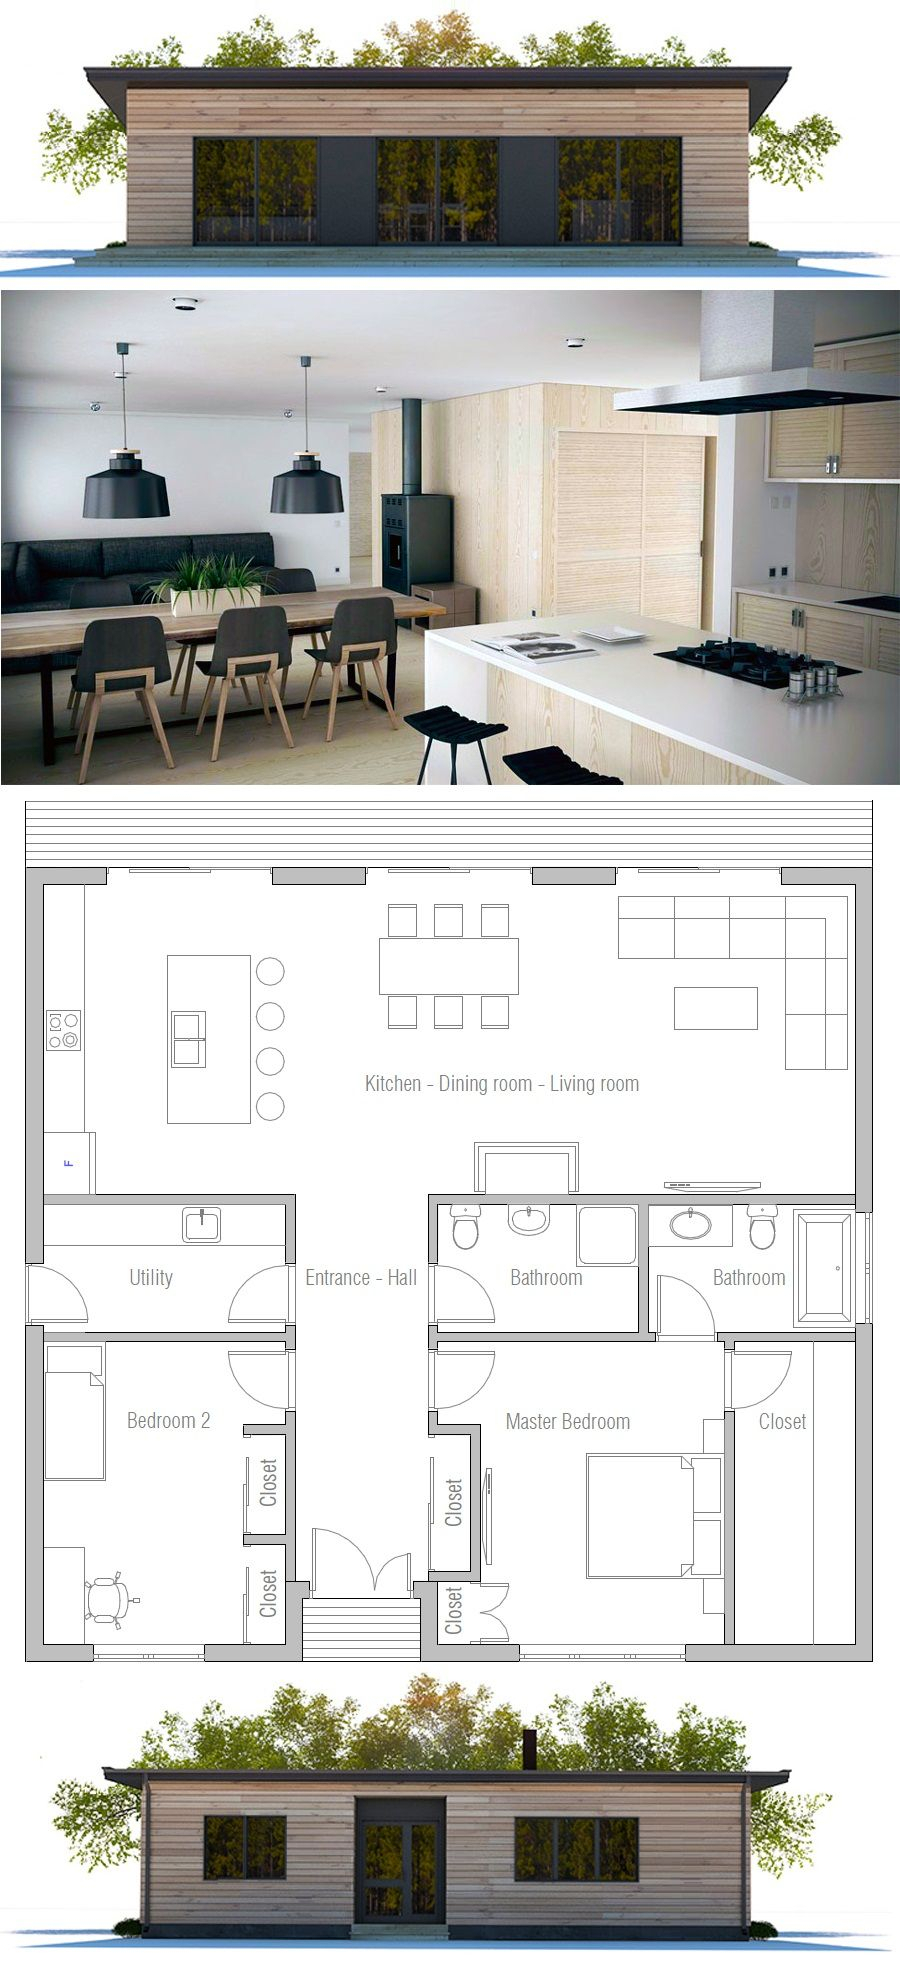 12 Some Of The Coolest Tricks Of How To Craft Modern Two inside 11 Some of the Coolest Ideas How to Make Modern 2 Bedroom House Plans